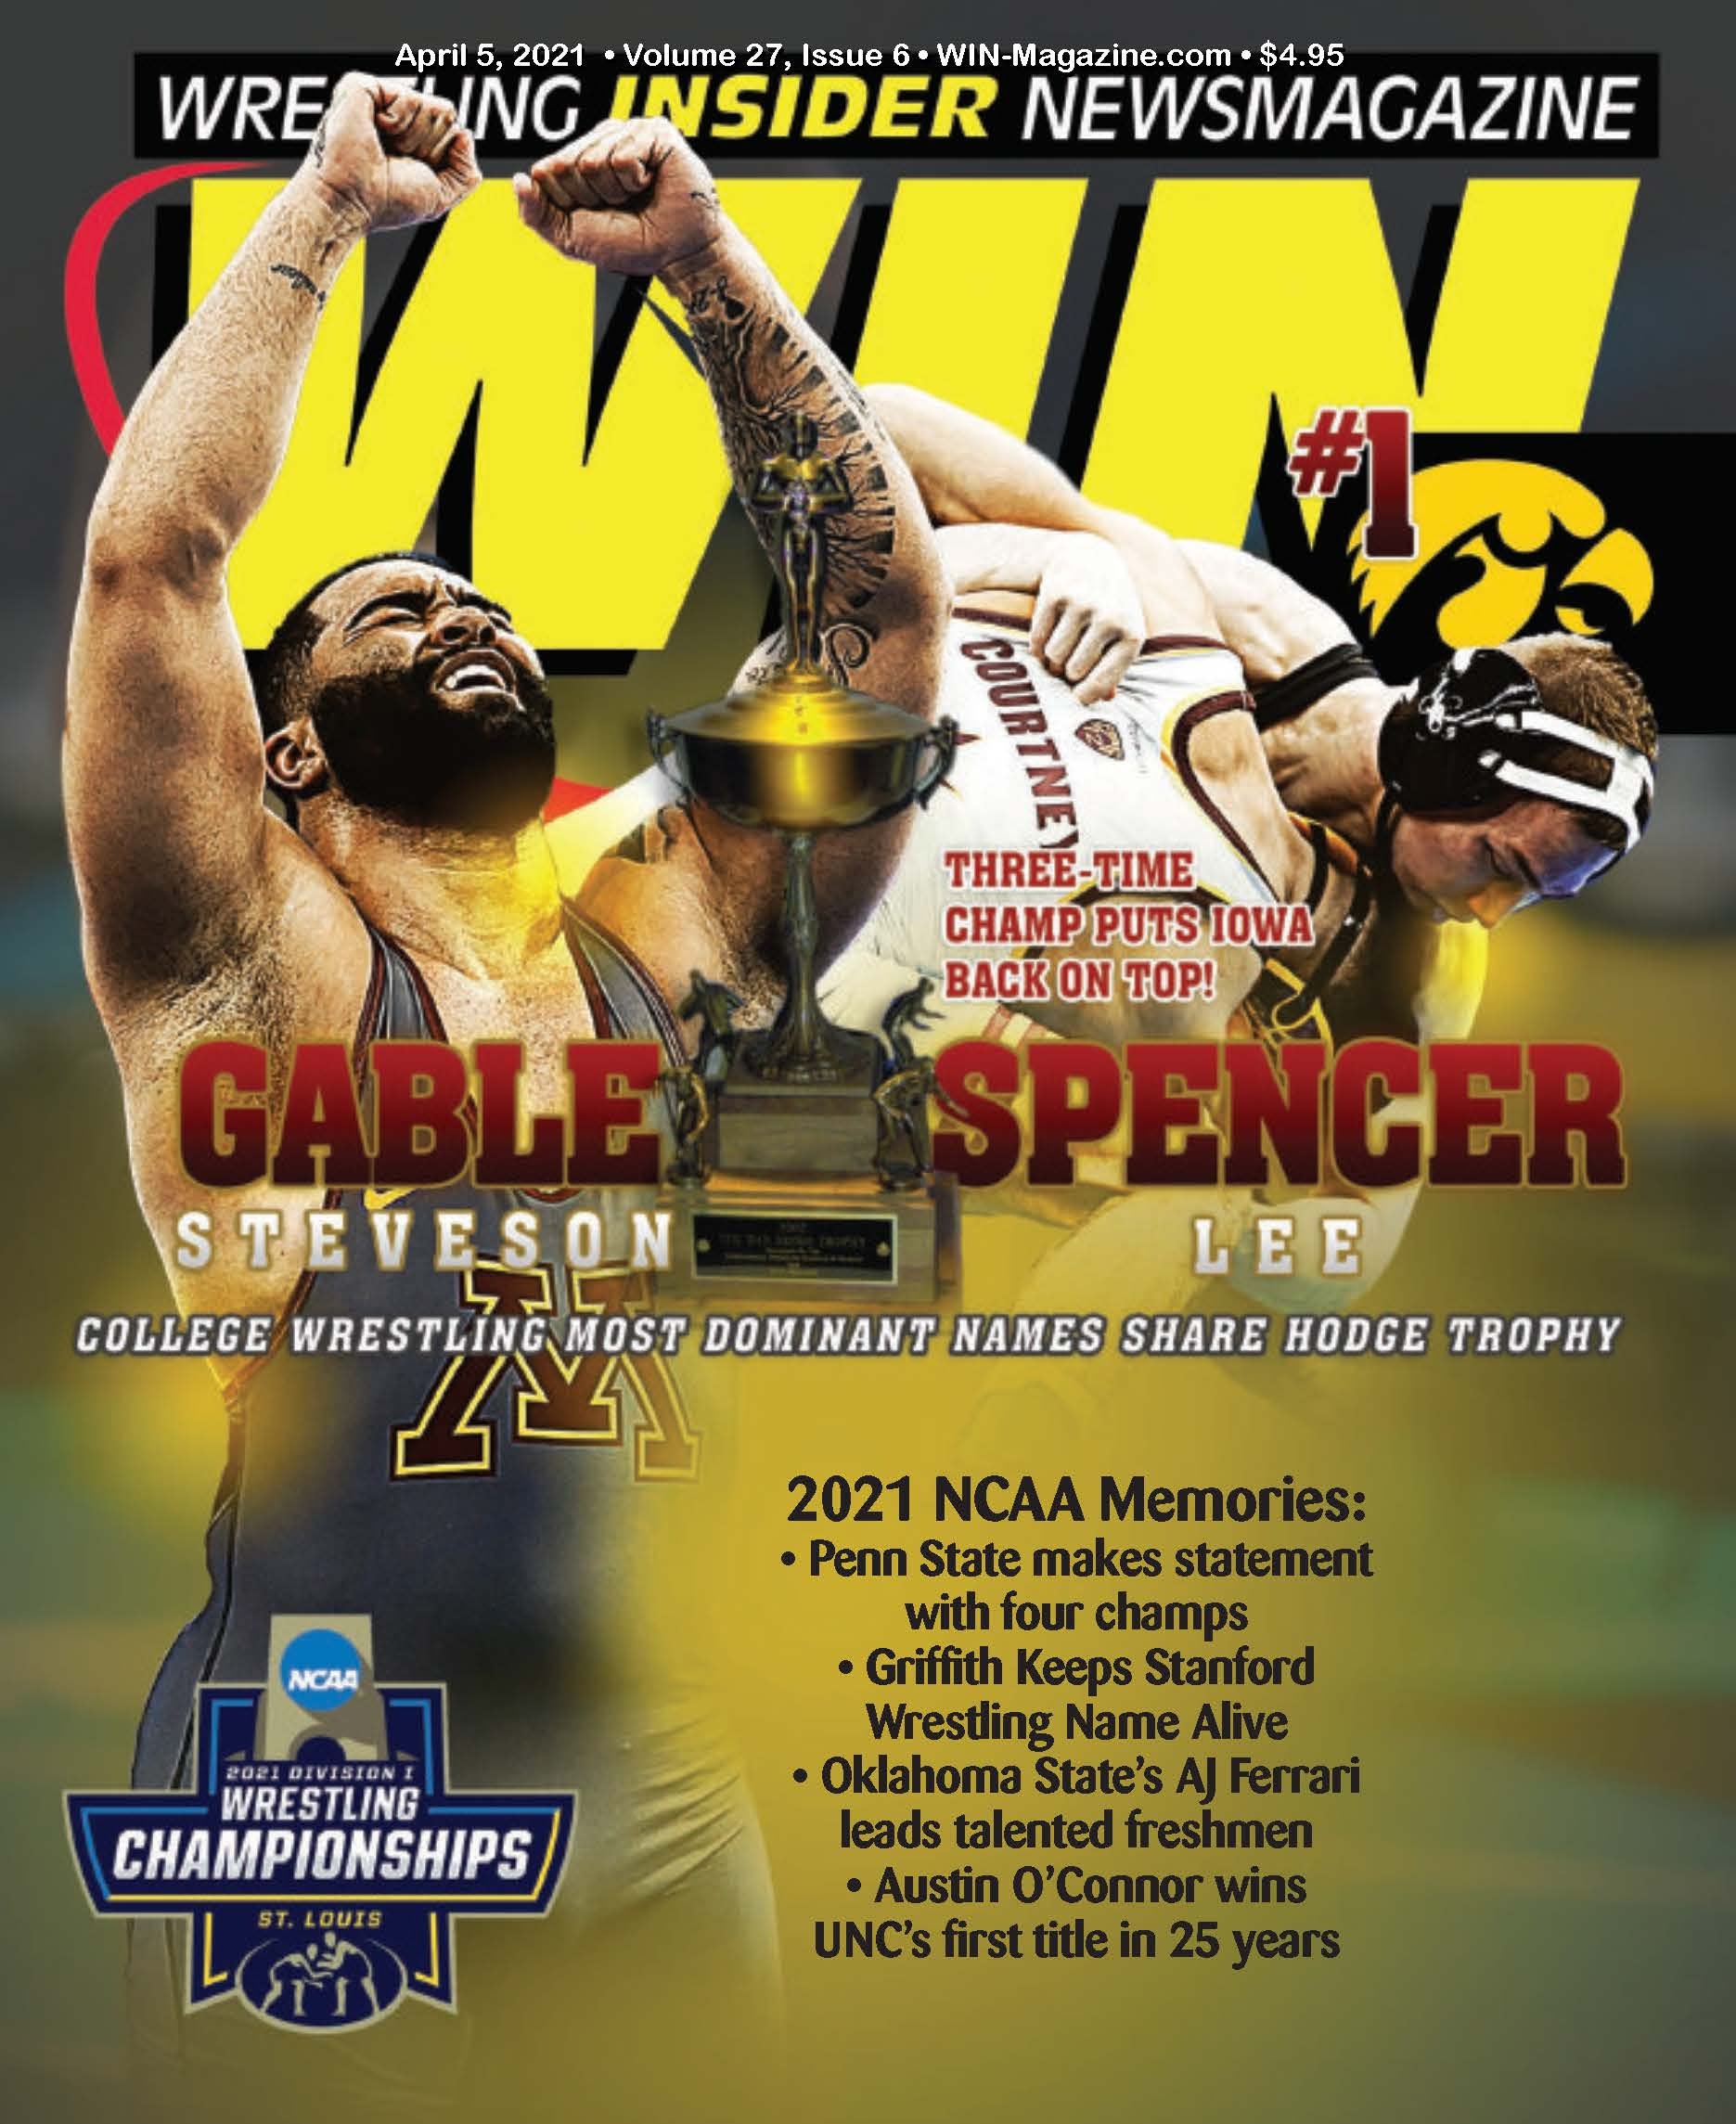 April 5th, 2021 WIN Magazine Cover of Gable Steveson and Spencer Lee